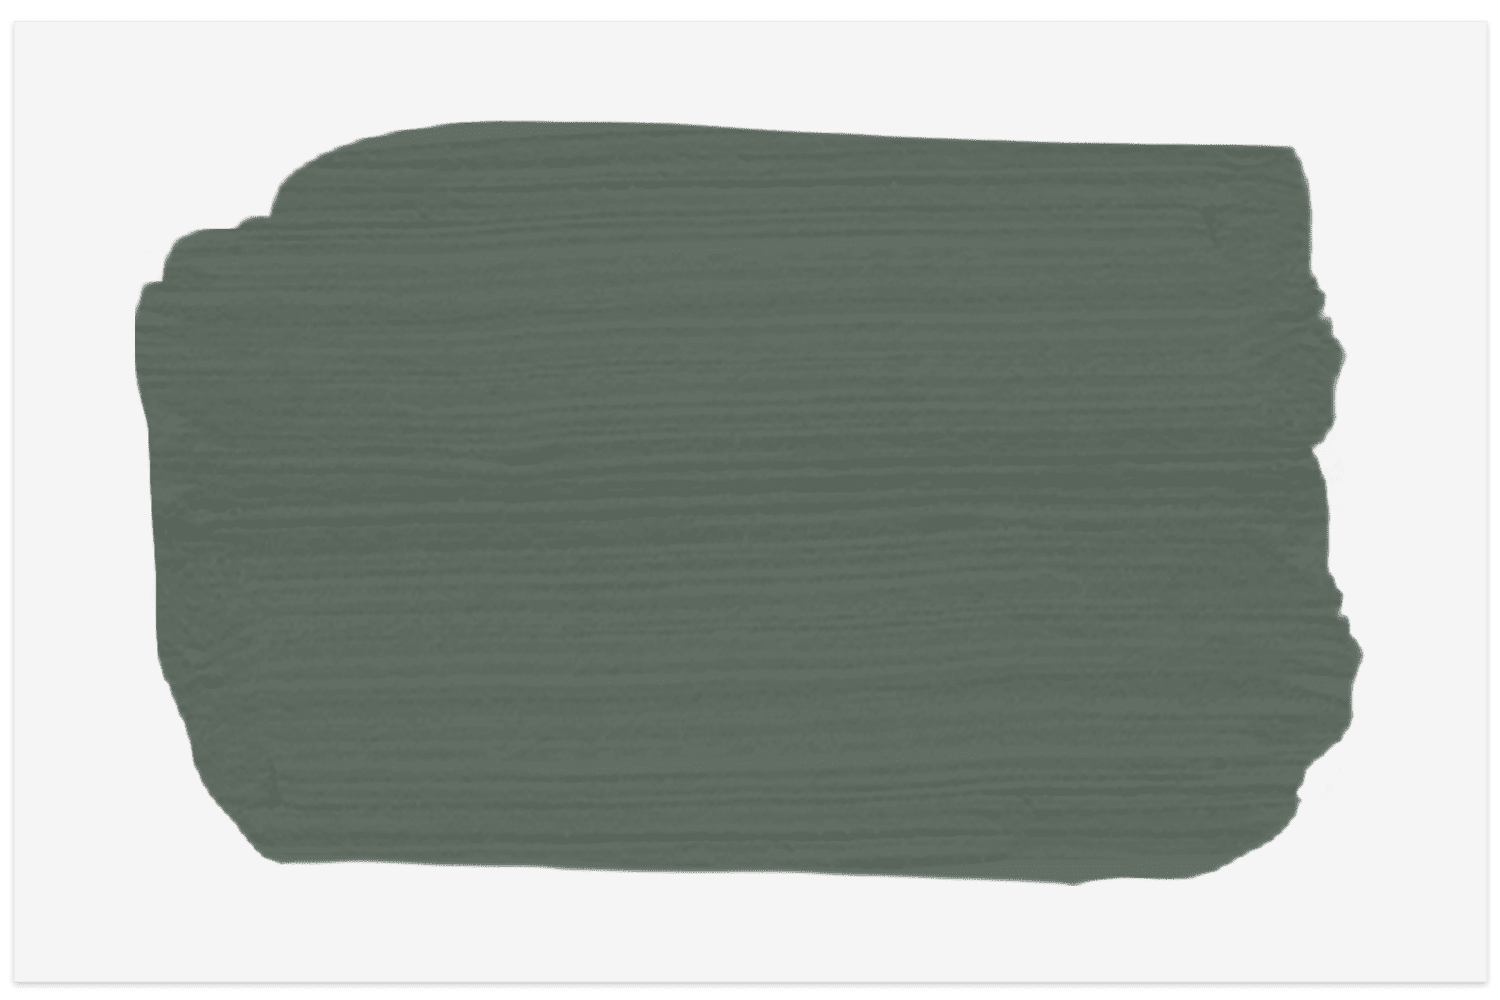 GREEN SMOKE No. 47 Farrow & Ball